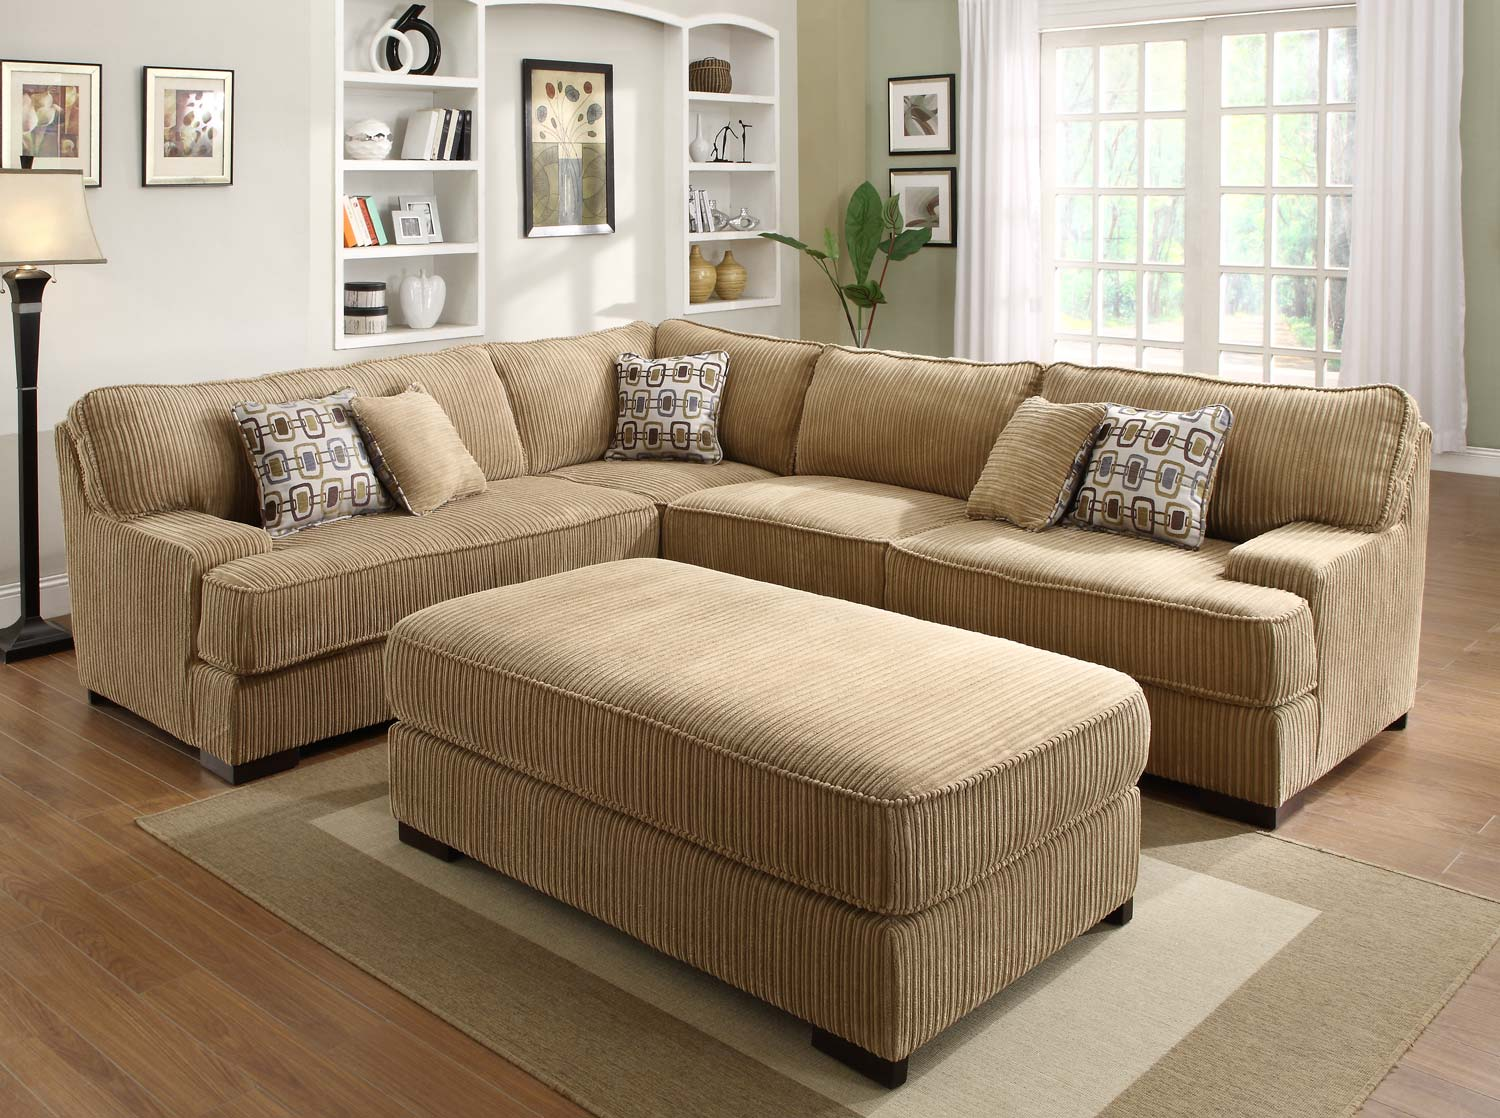 Superb Homelegance U SECT Minnis Sectional Sofa Set  Product Photo